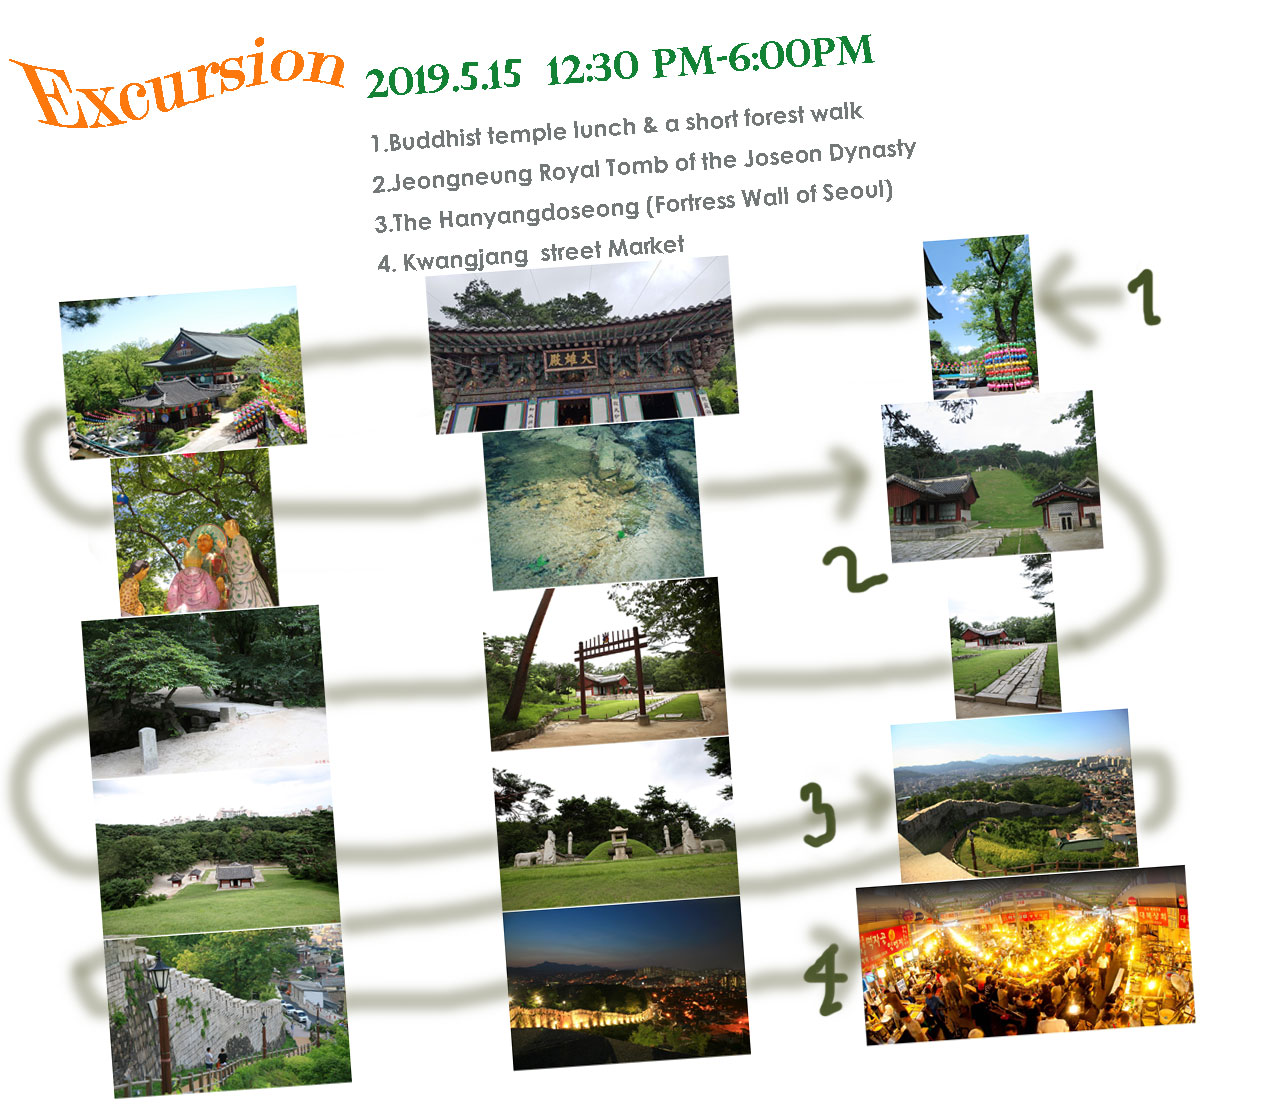 Plan for the Excursion:  4-course excursion